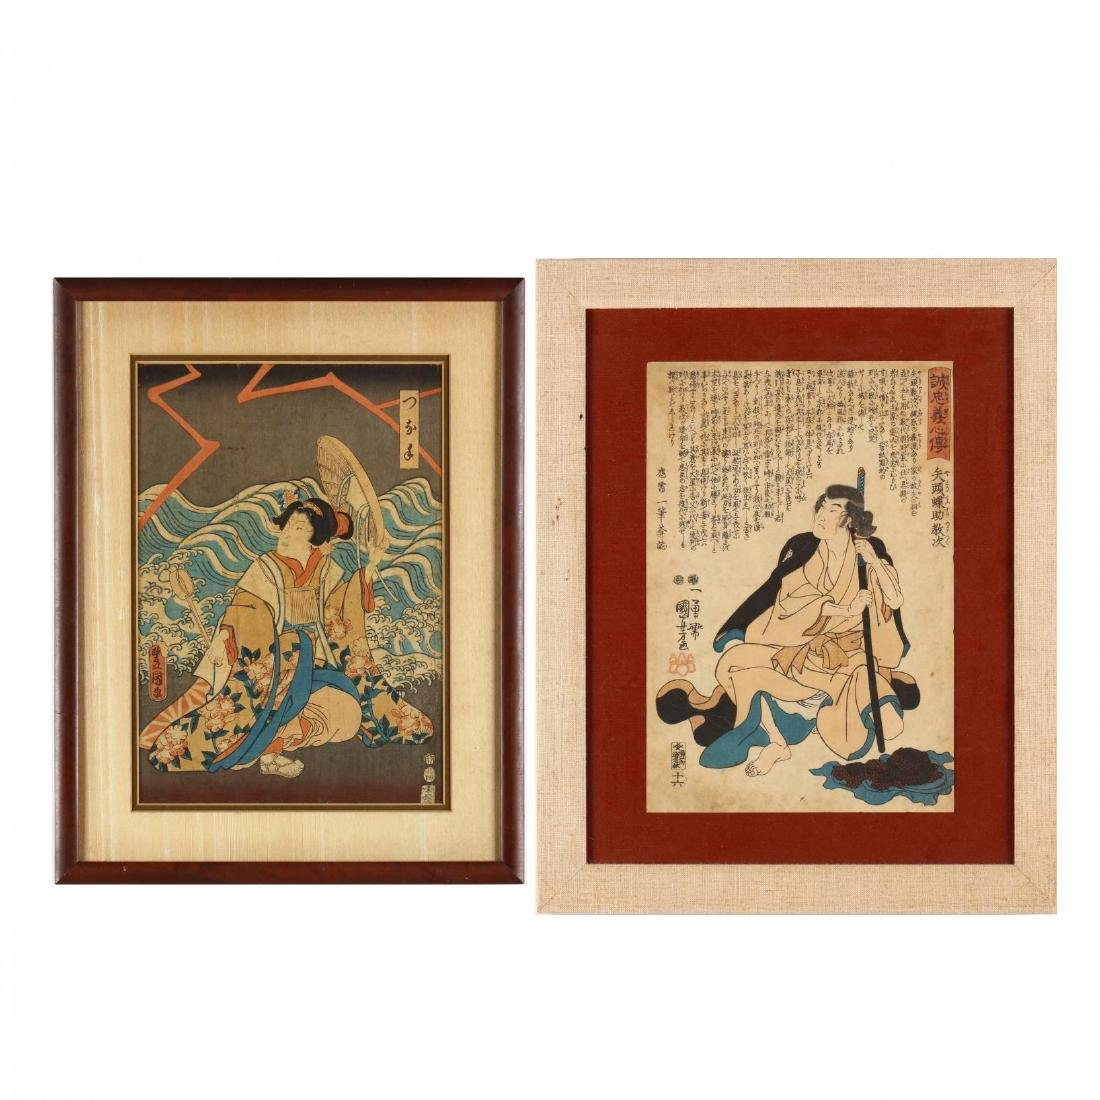 Two Japanese Woodblock Prints by Kunisada and Kuniyoshi